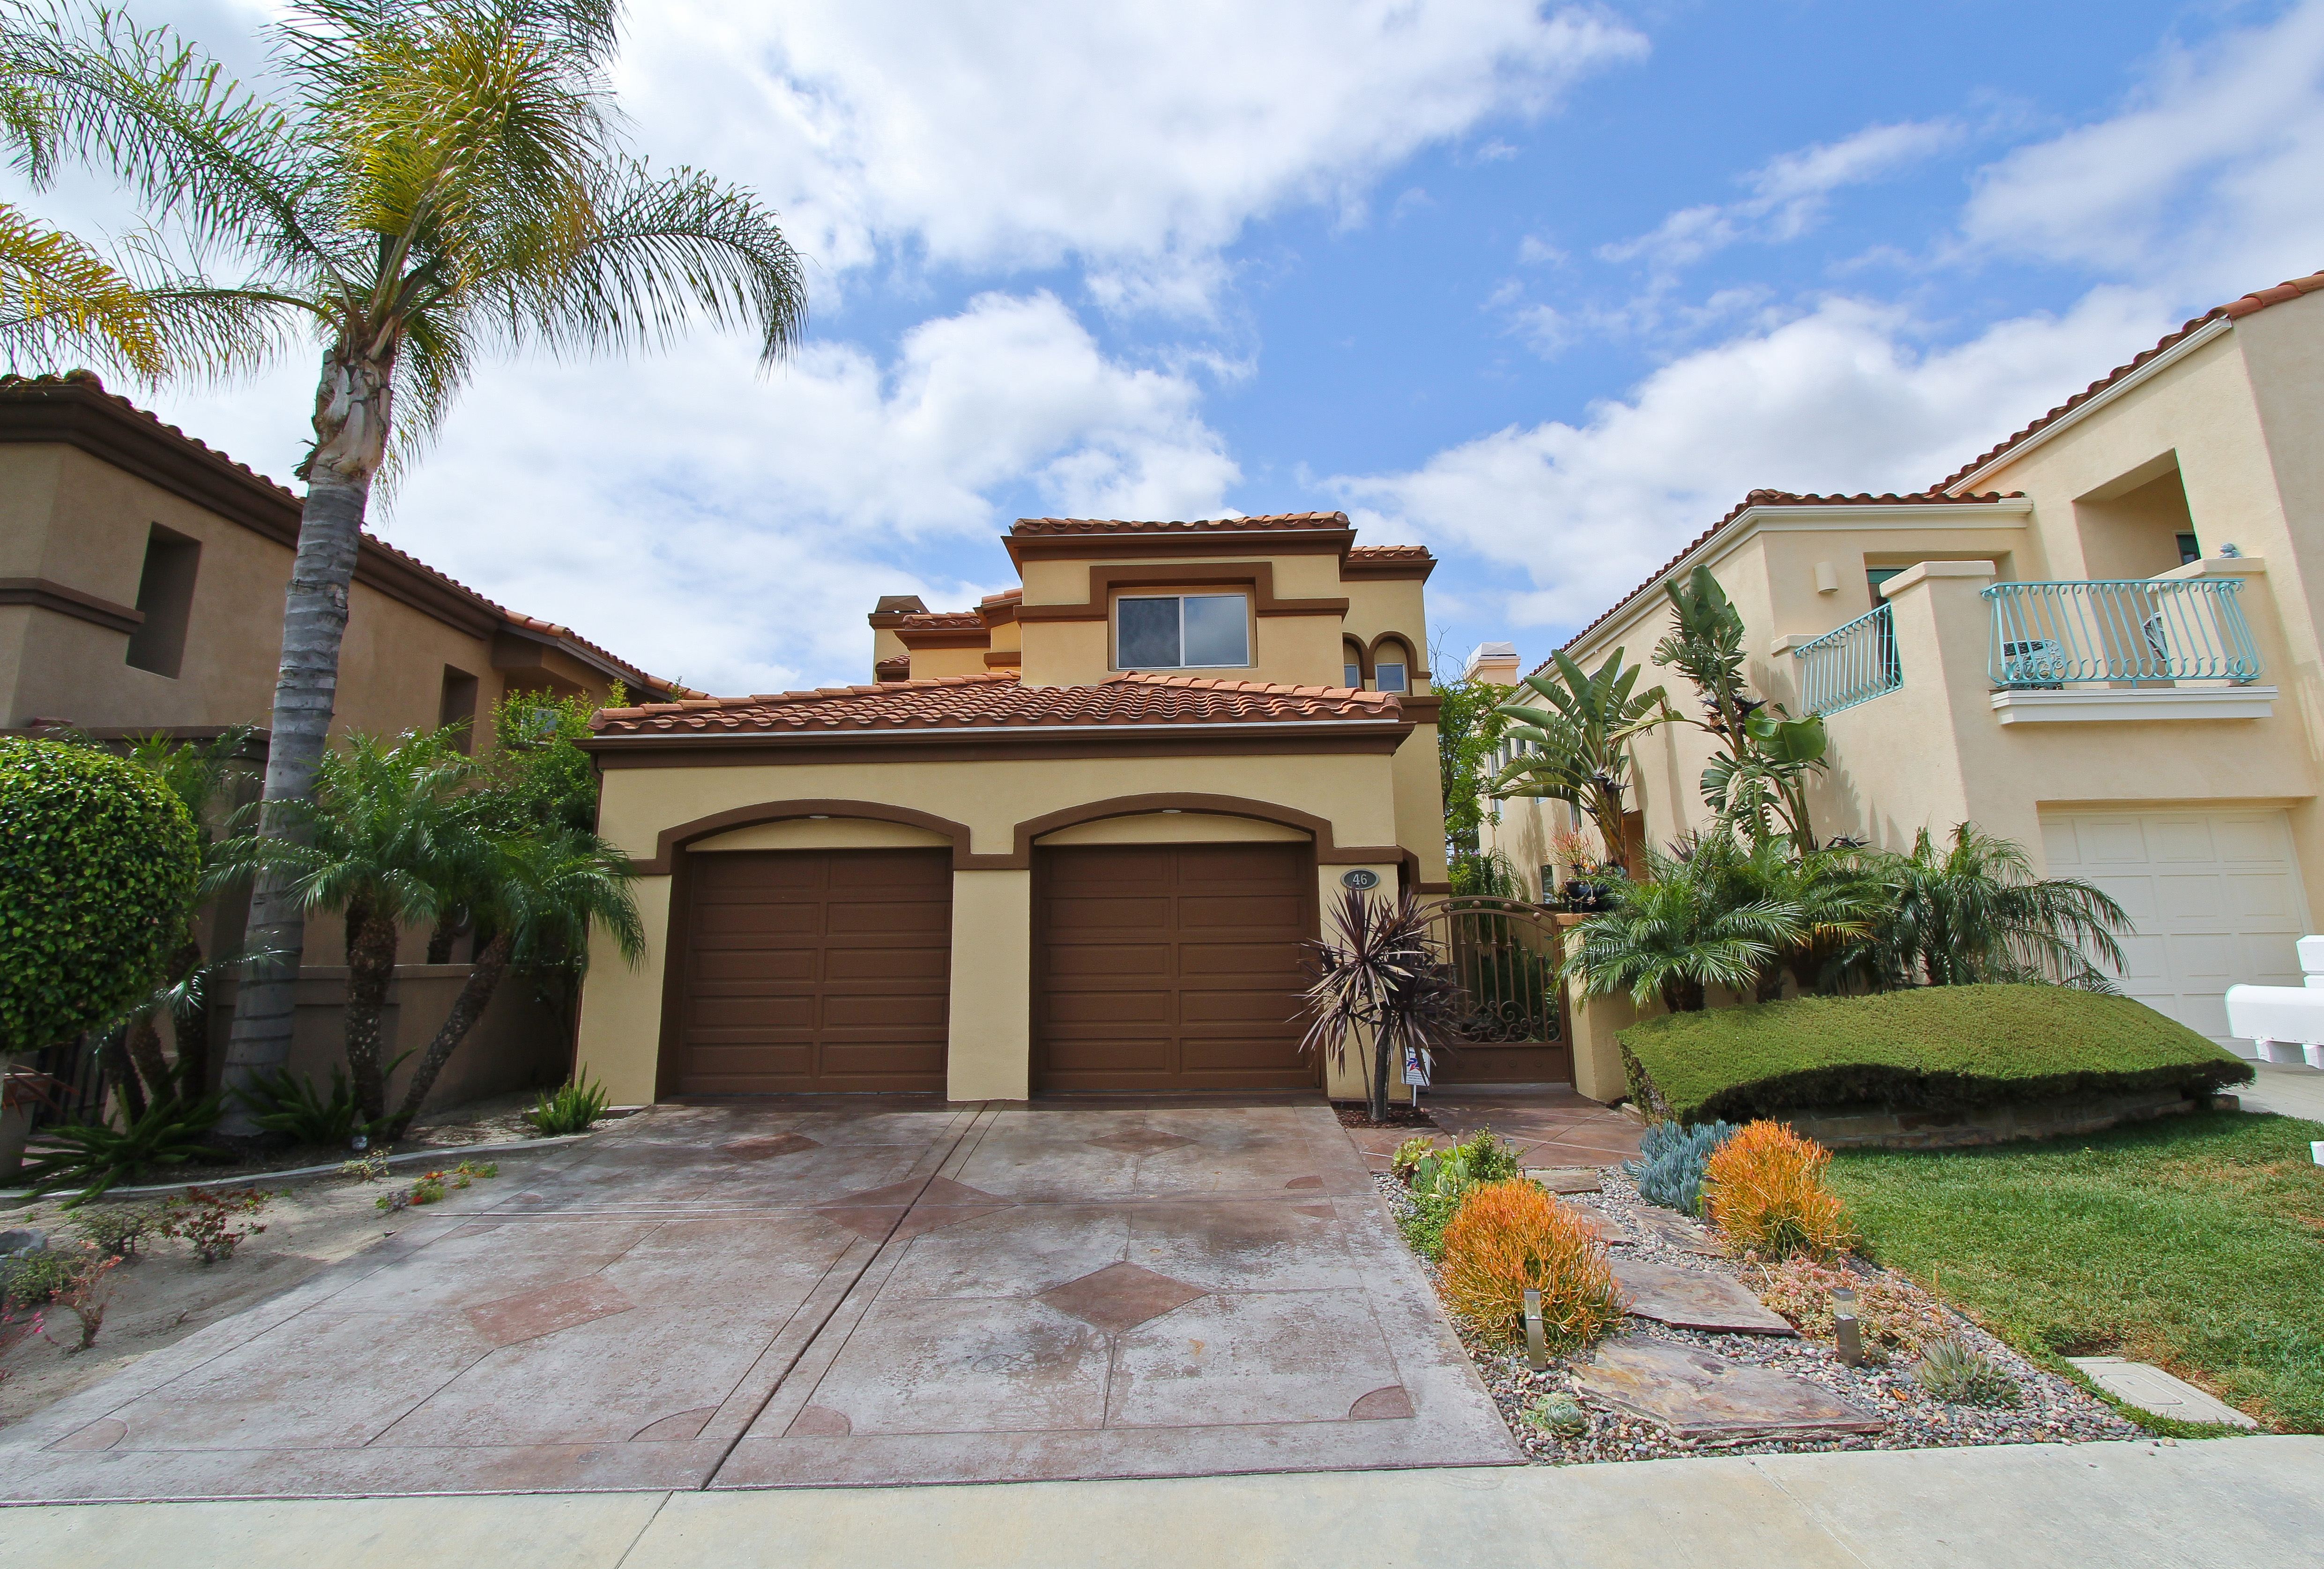 46 Blazewood, Foothill Ranch, CA